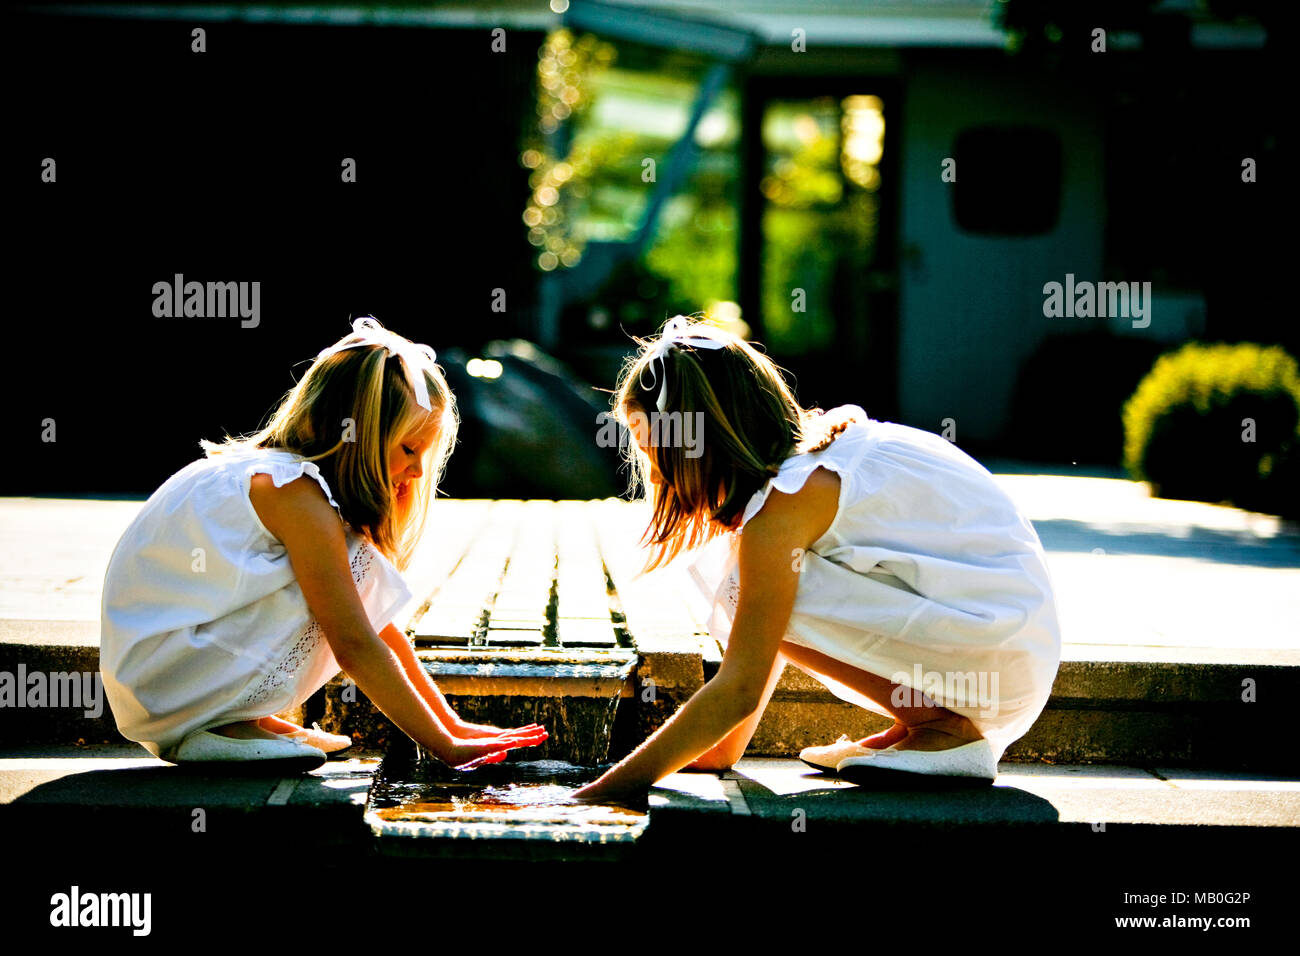 Two pretty young girls in white skirts and white shoes playing with fountain water at a park with sun light shining from behind - Stock Image